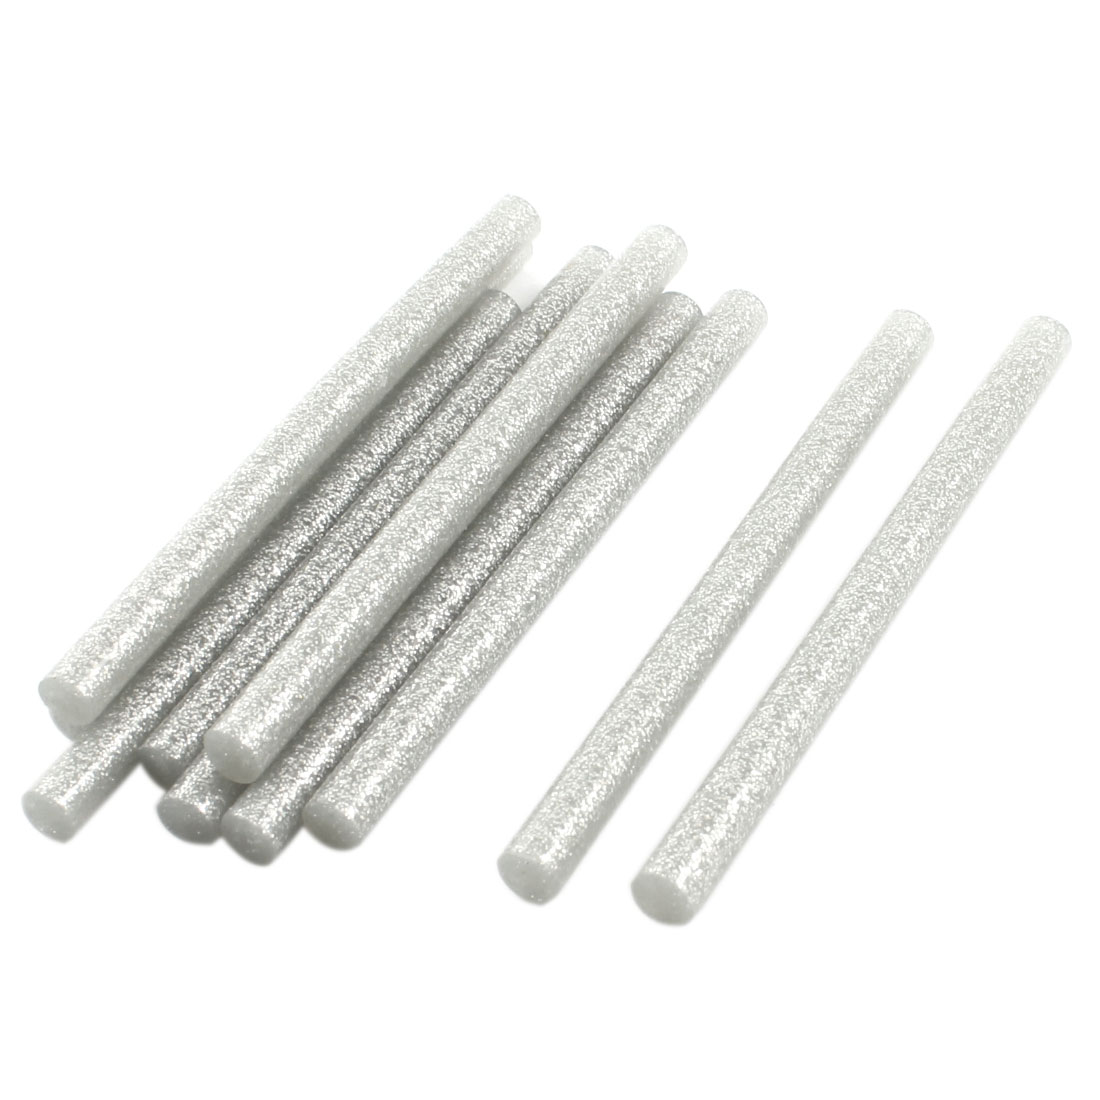 10Pcs 7mm x 100mm Silver Tone Glitter Hot Melt Glue Adhesive Sticks for Electric Tool Heating Gun